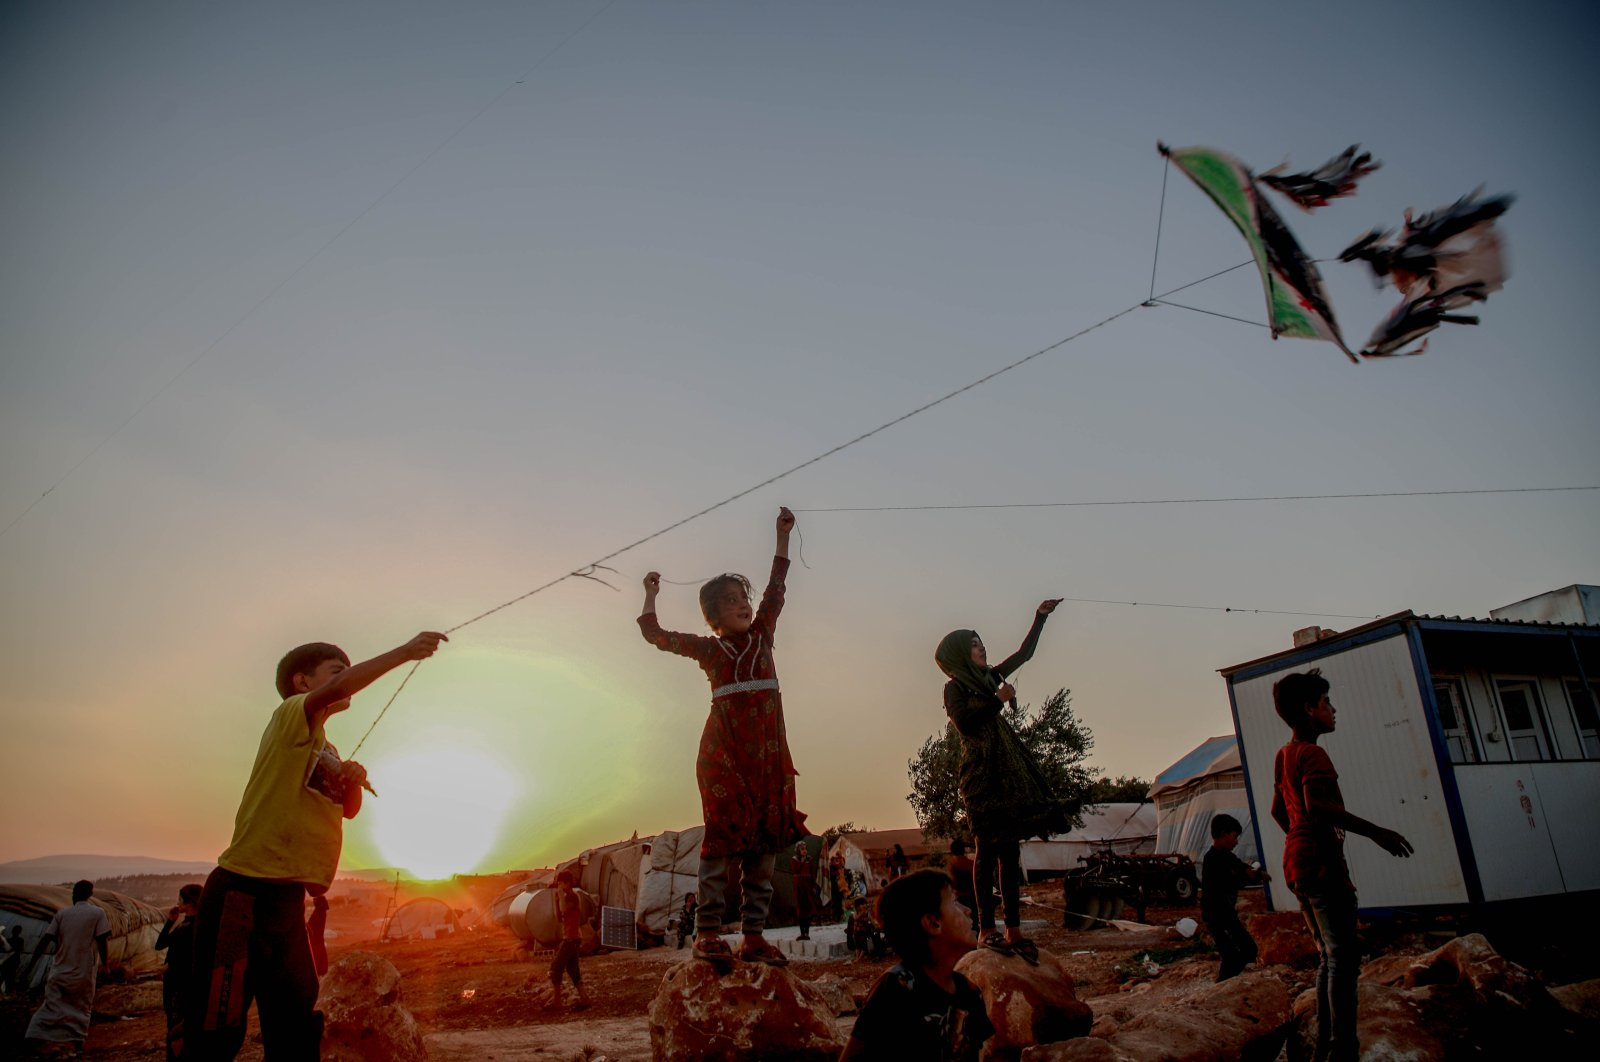 Syrian children fly kites at sunset in a camp for the displaced, Idlib, northwestern Syria, July 6, 2020. (Photo by Getty Images)